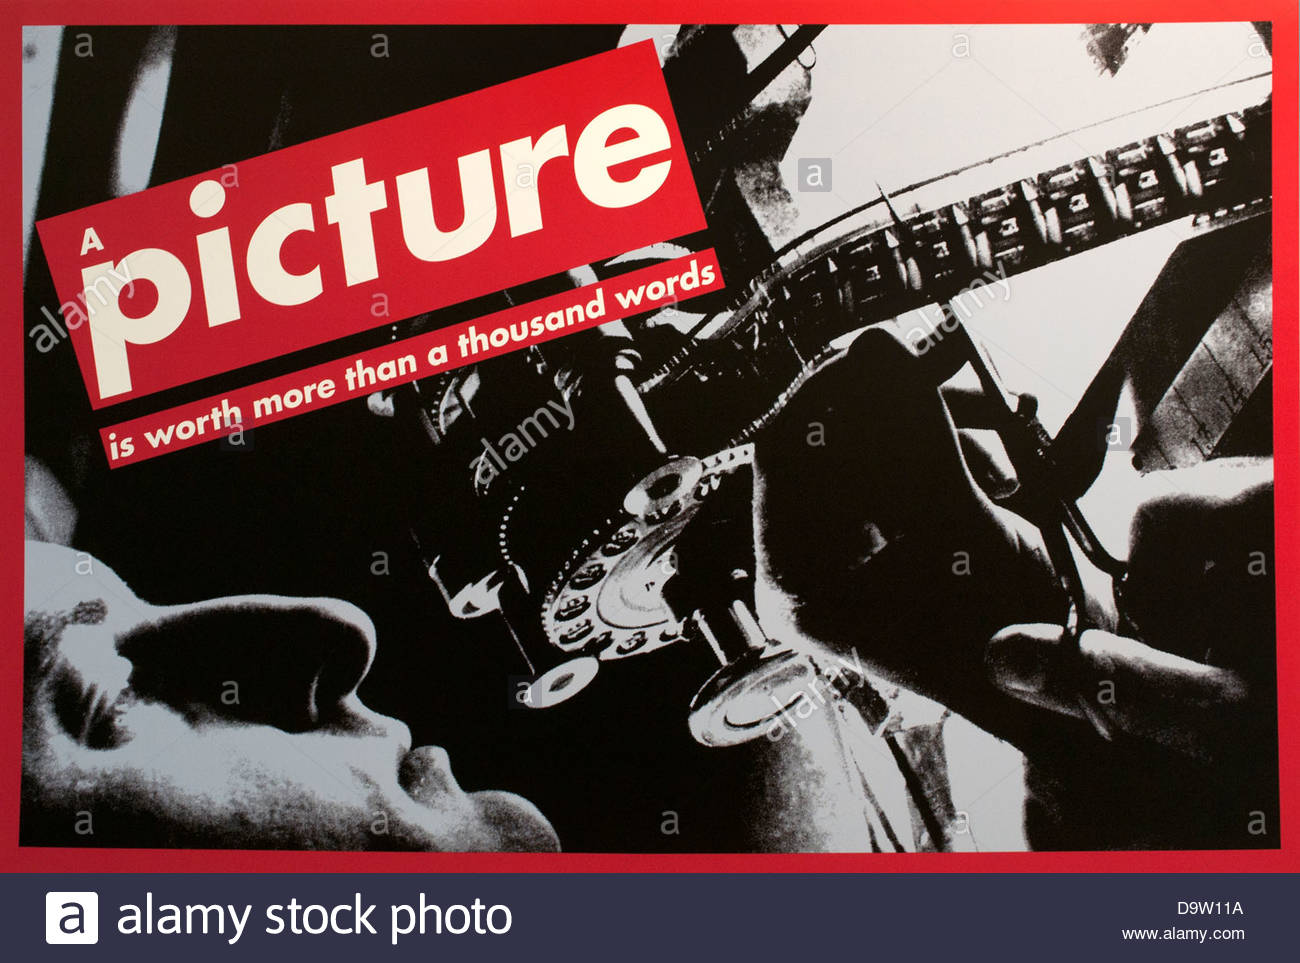 Untitled (A picture is worth more than a thousand words), Barbara Kruger, 1992 American United States of America - Stock Image